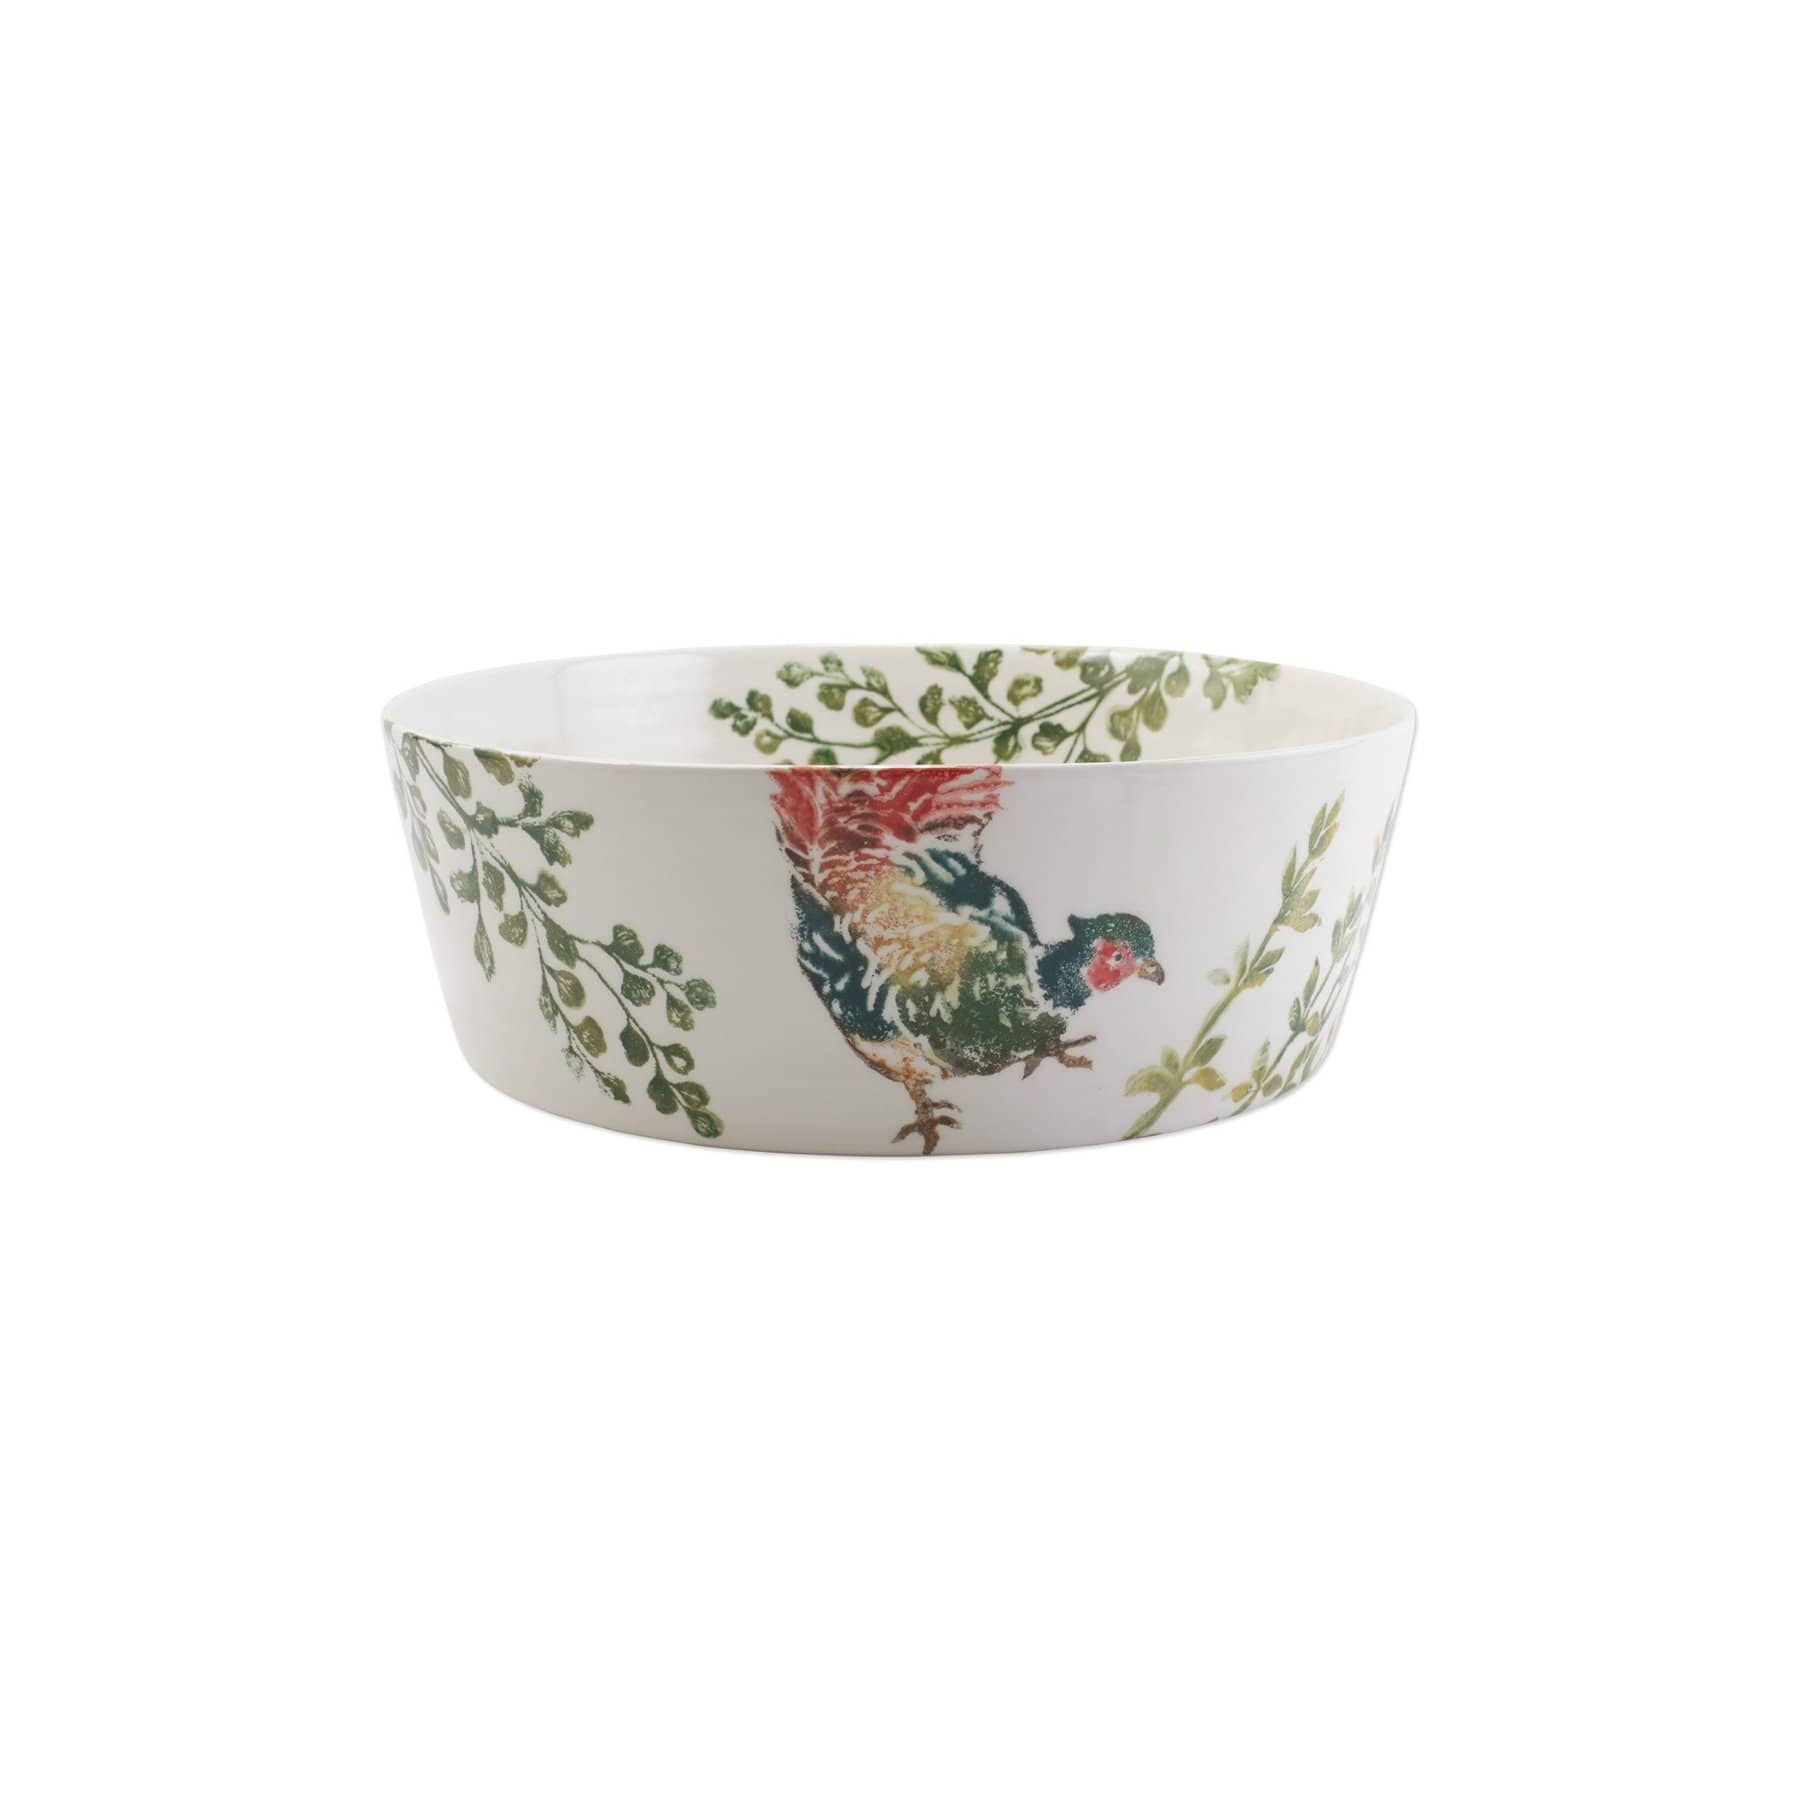 Fauna Pheasants Large Serving Bowl